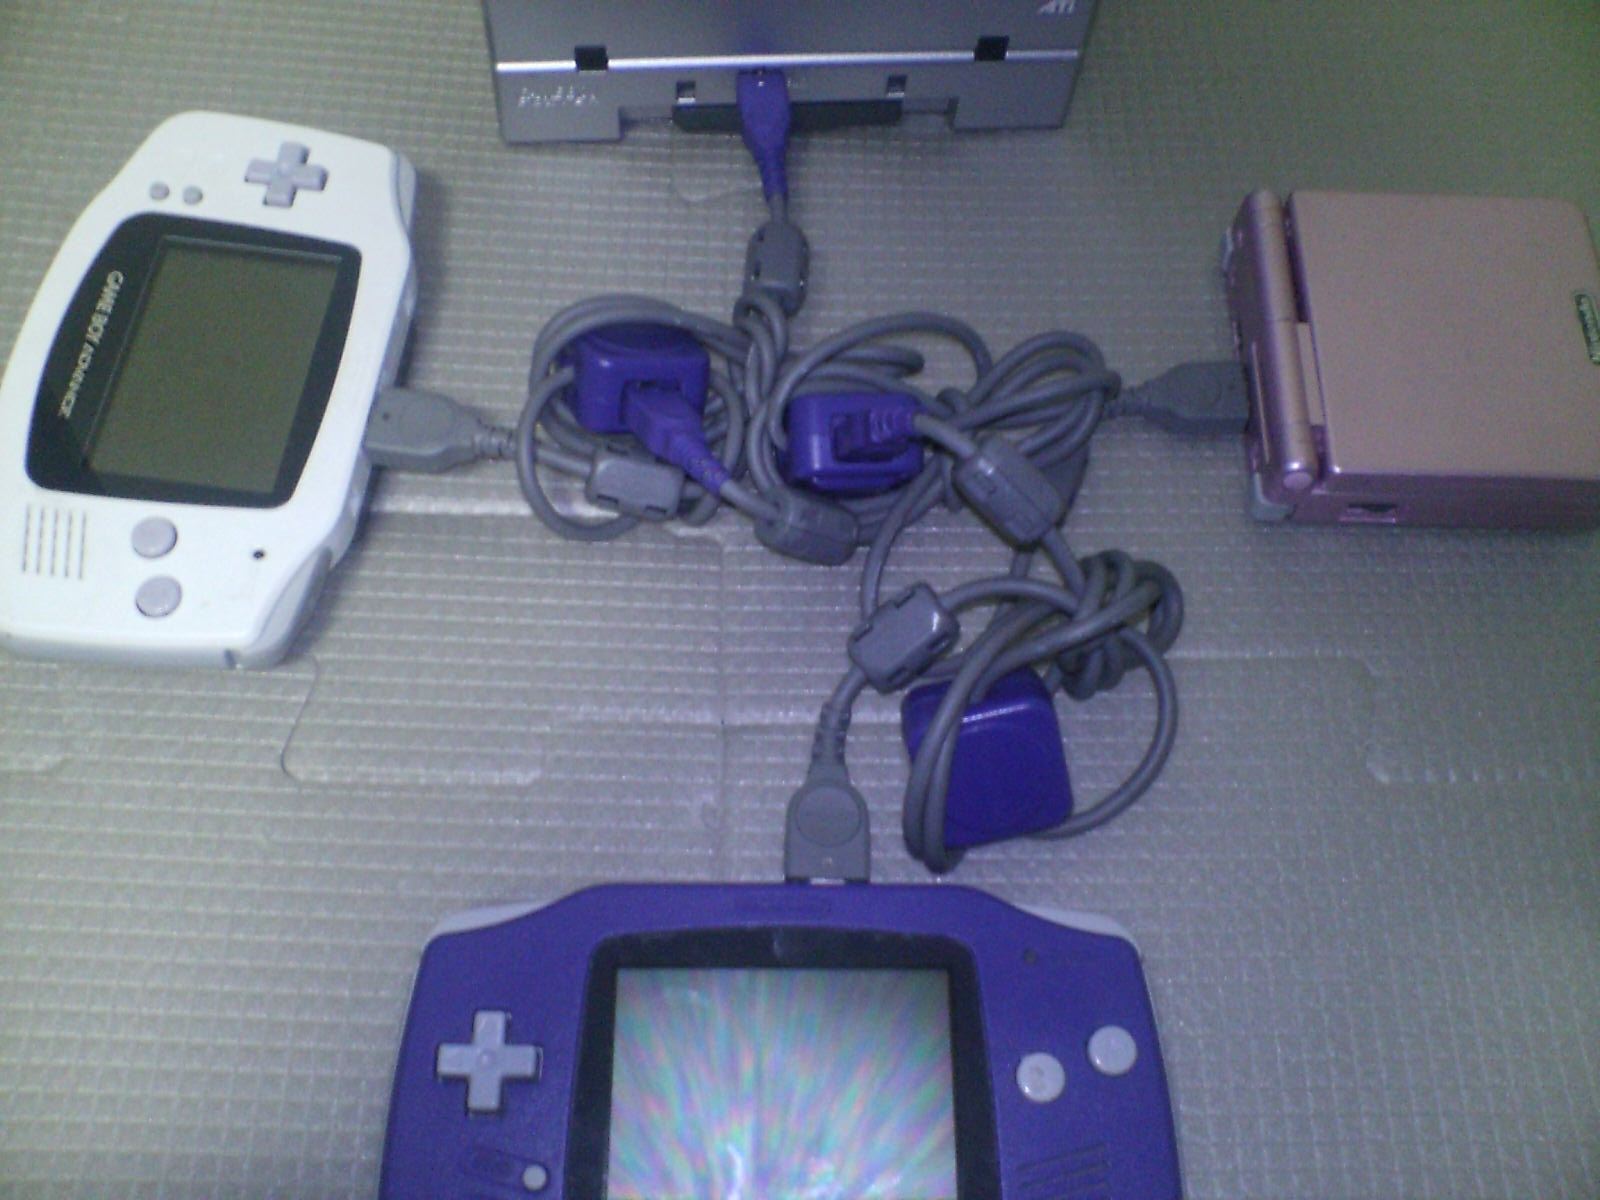 Game boy color link cable - File Gba 4pconnection Jpg